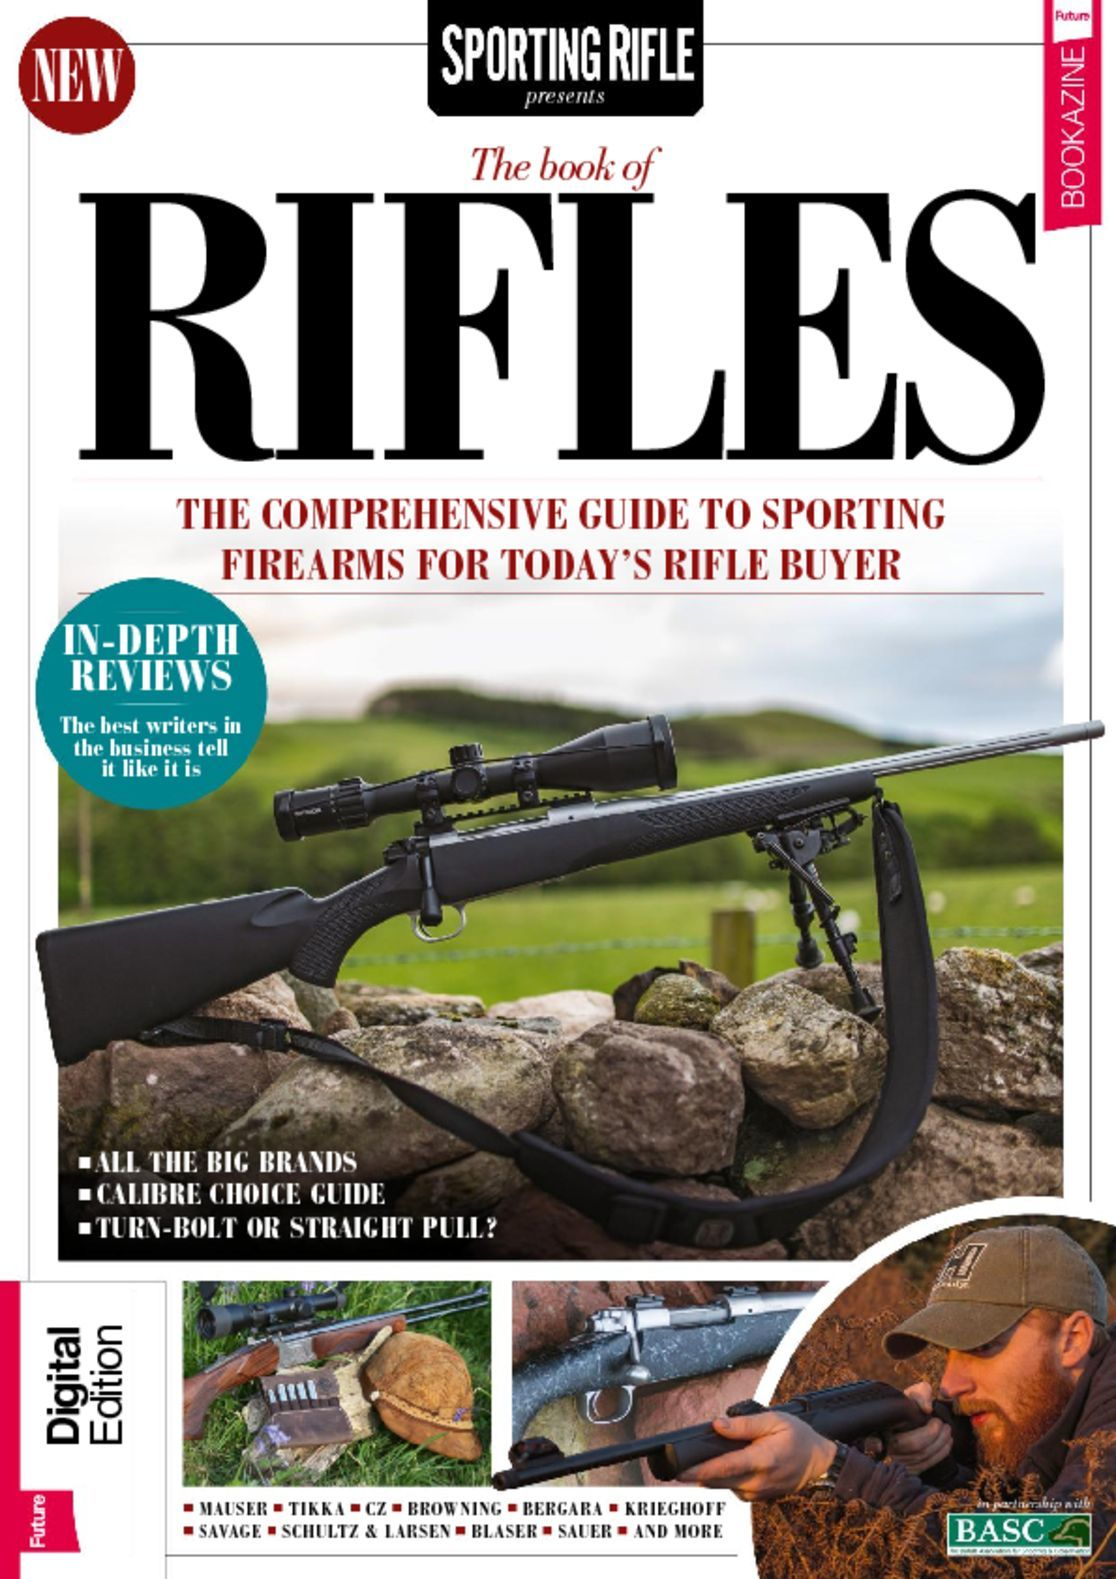 Sporting Rifle Presents The Book of Rifles Digital